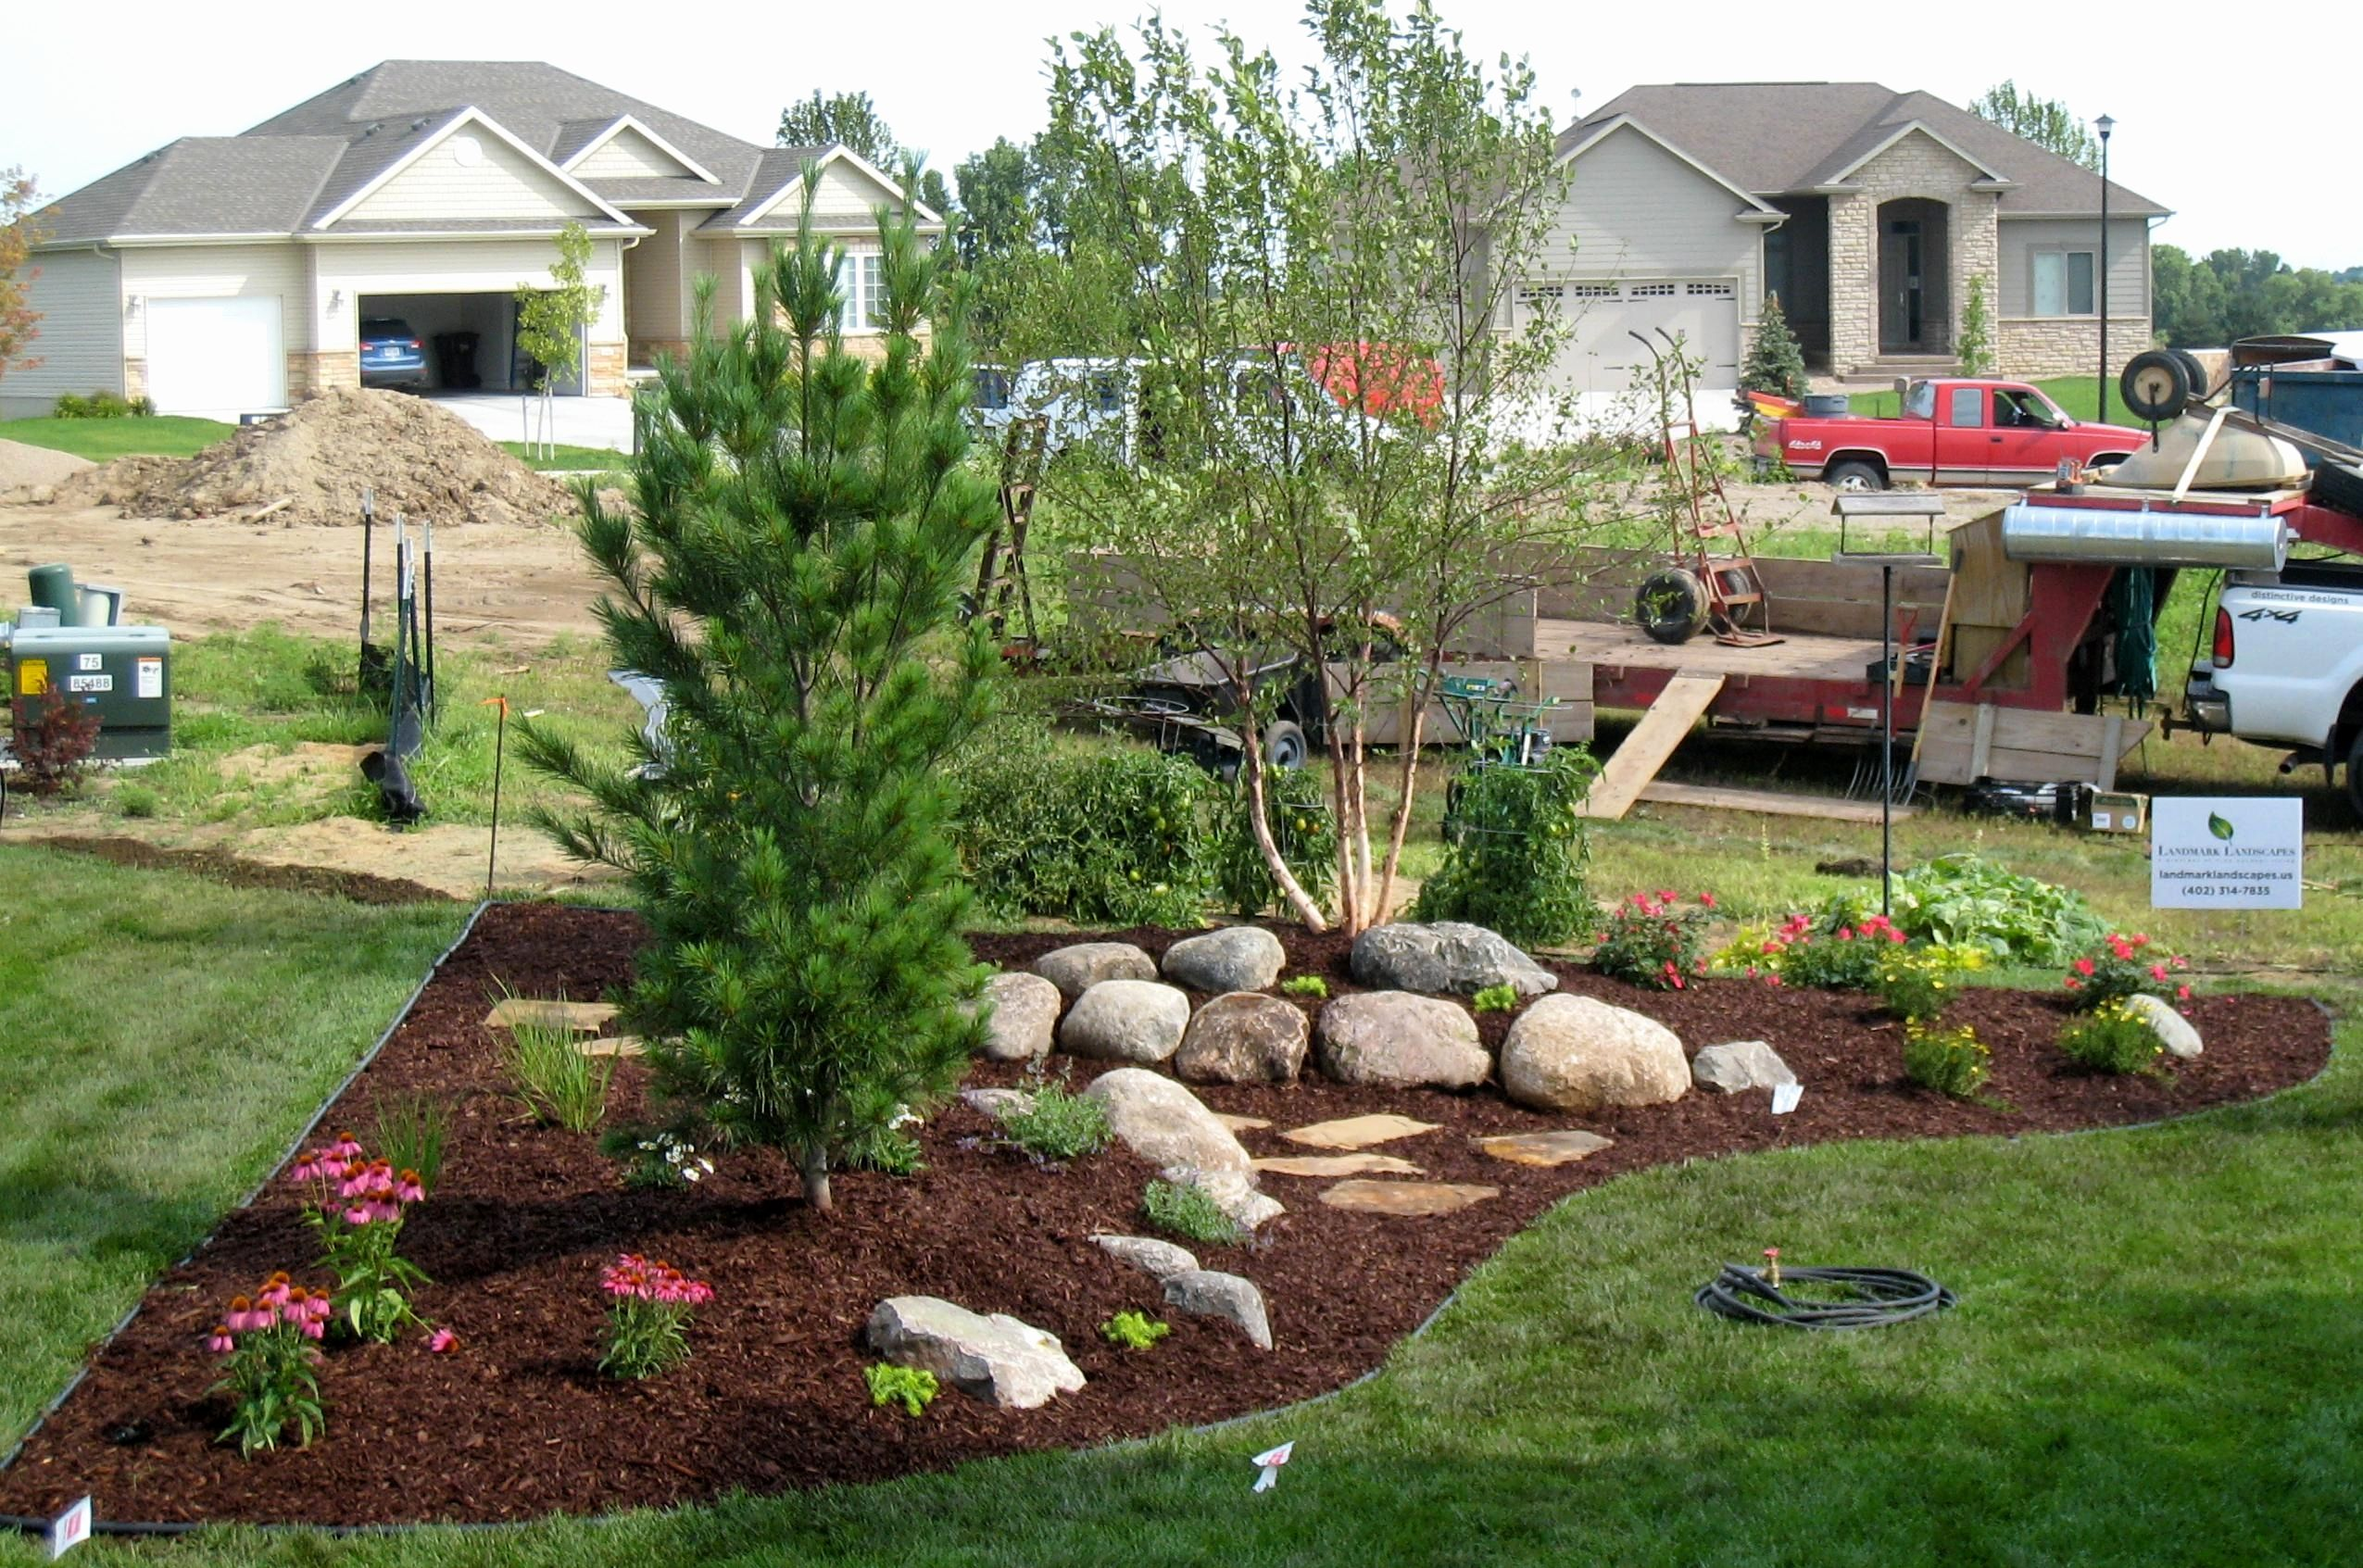 landscaping backyard corner ideas  backyard and yard ... on Backyard Landscape Designers Near Me  id=27368